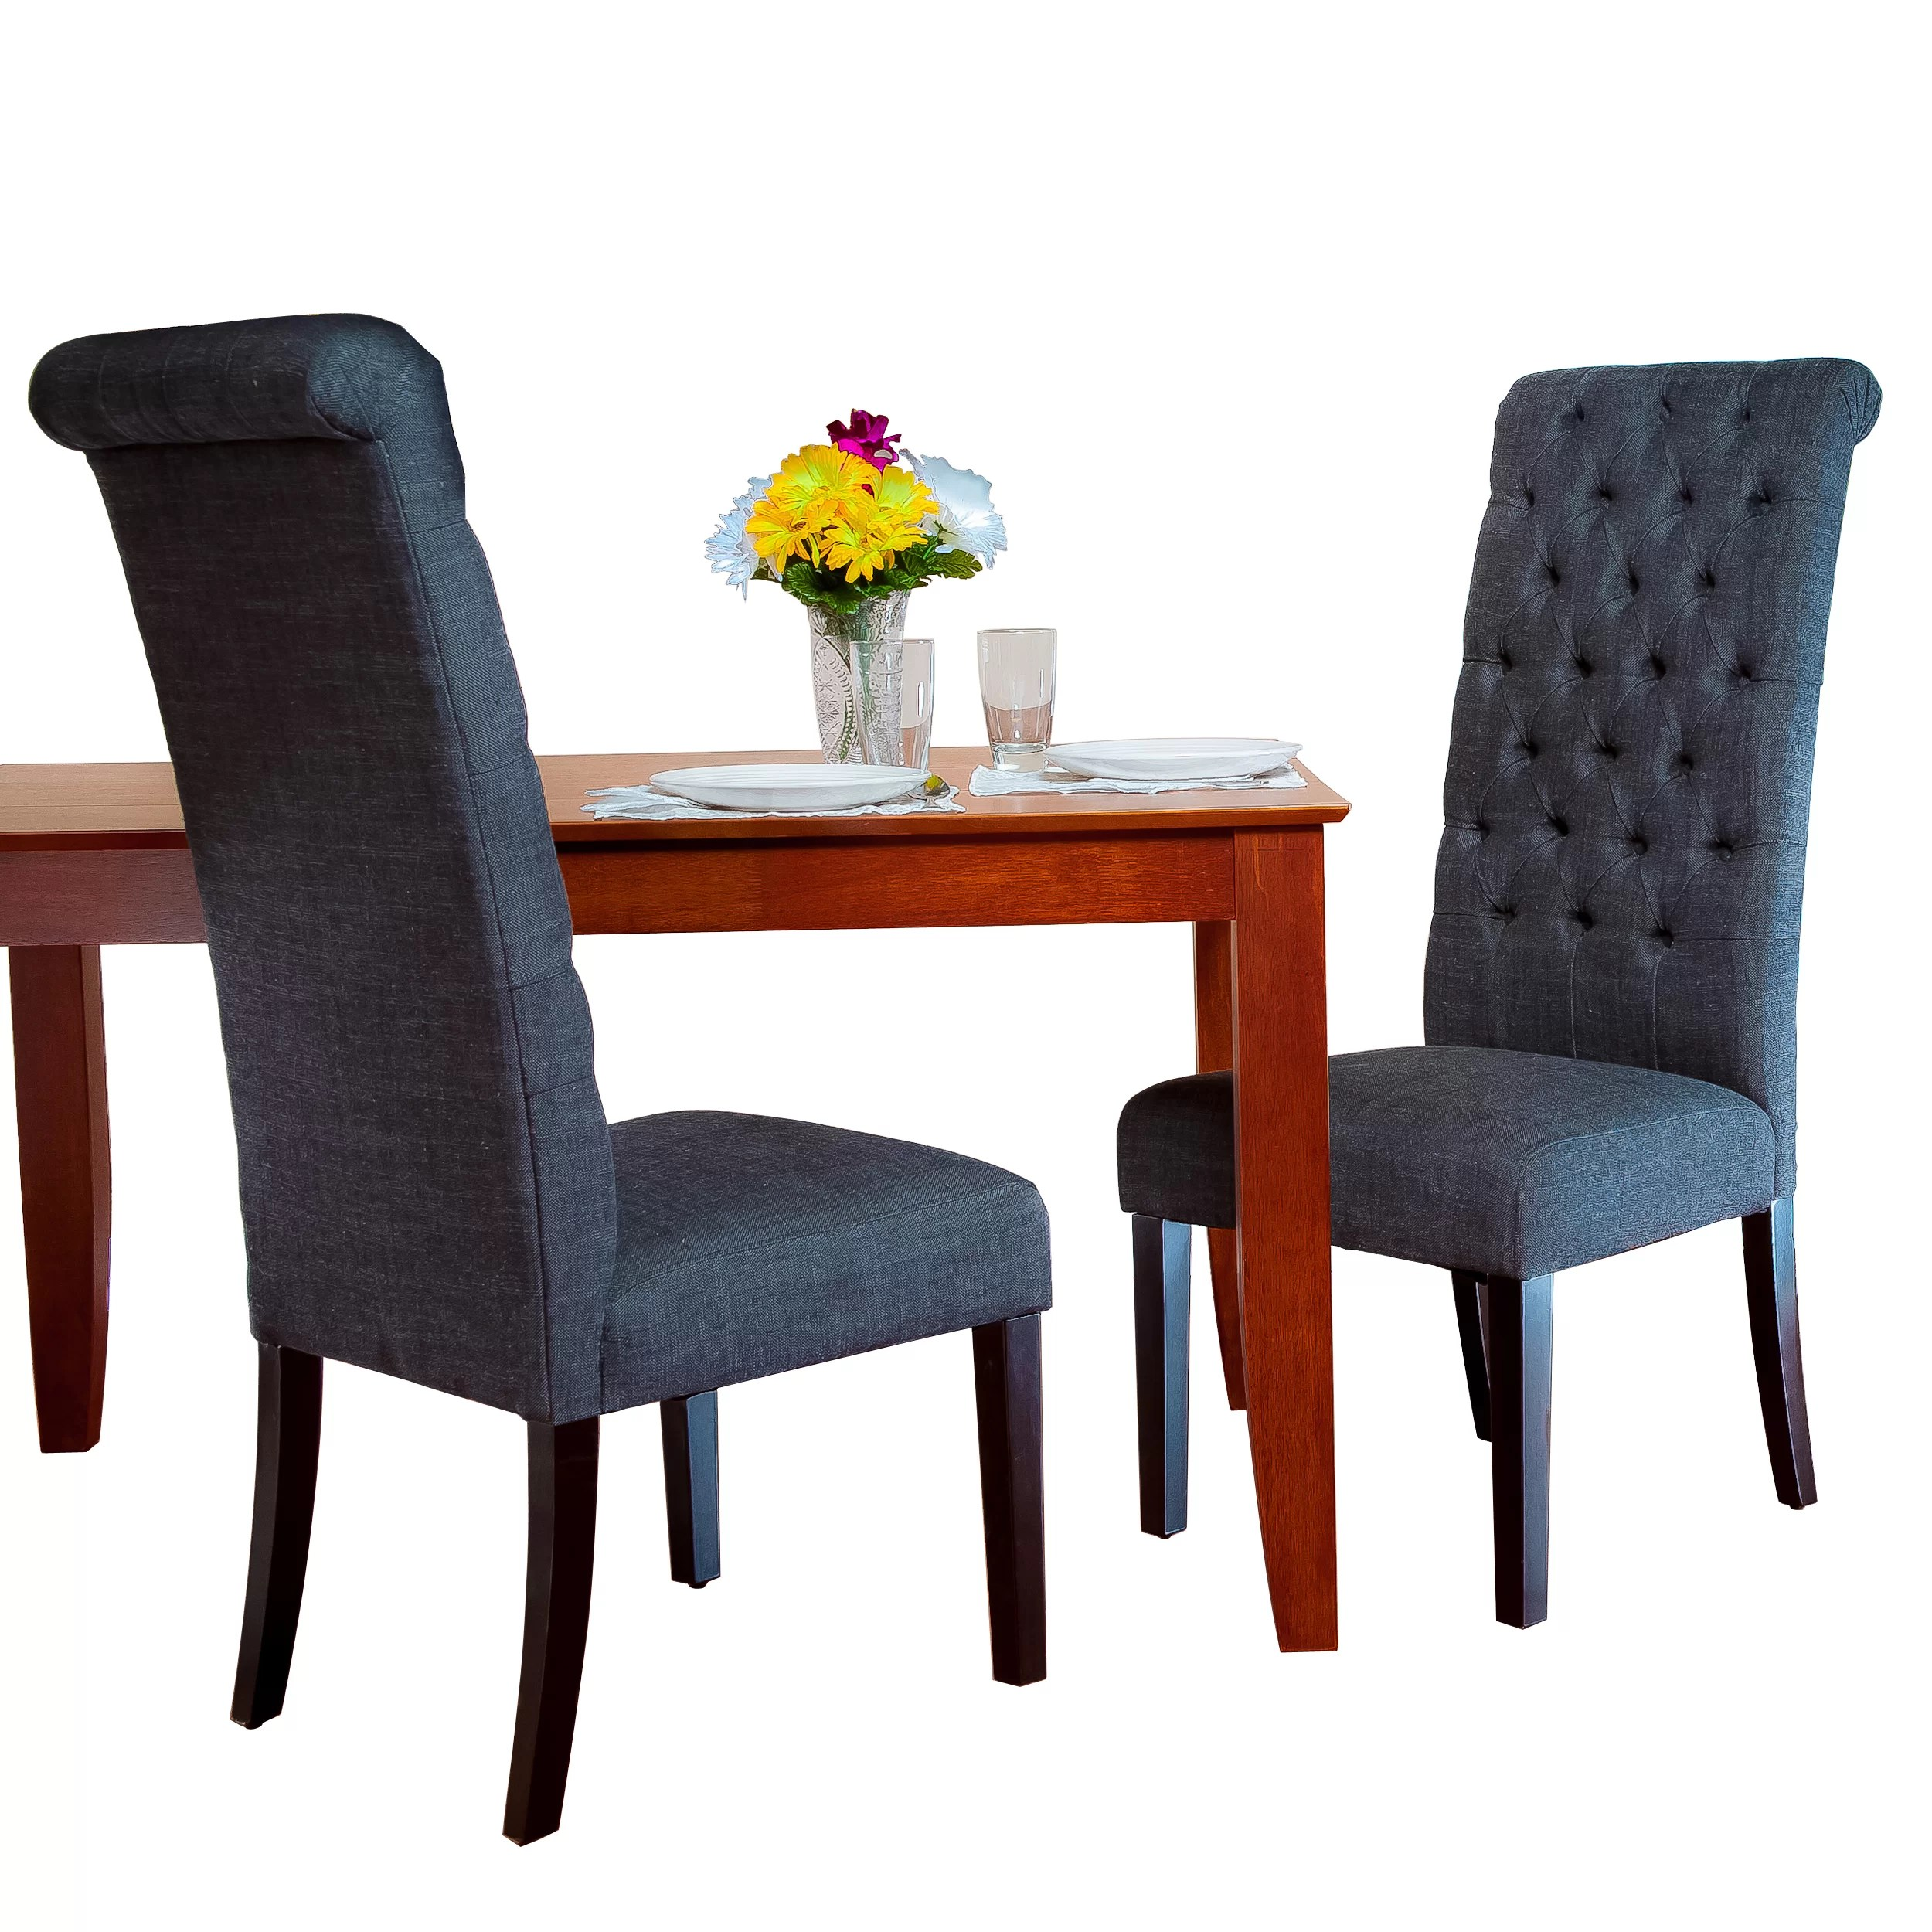 tall dining chairs cloth high chair charlton home estbury tufted upholstered